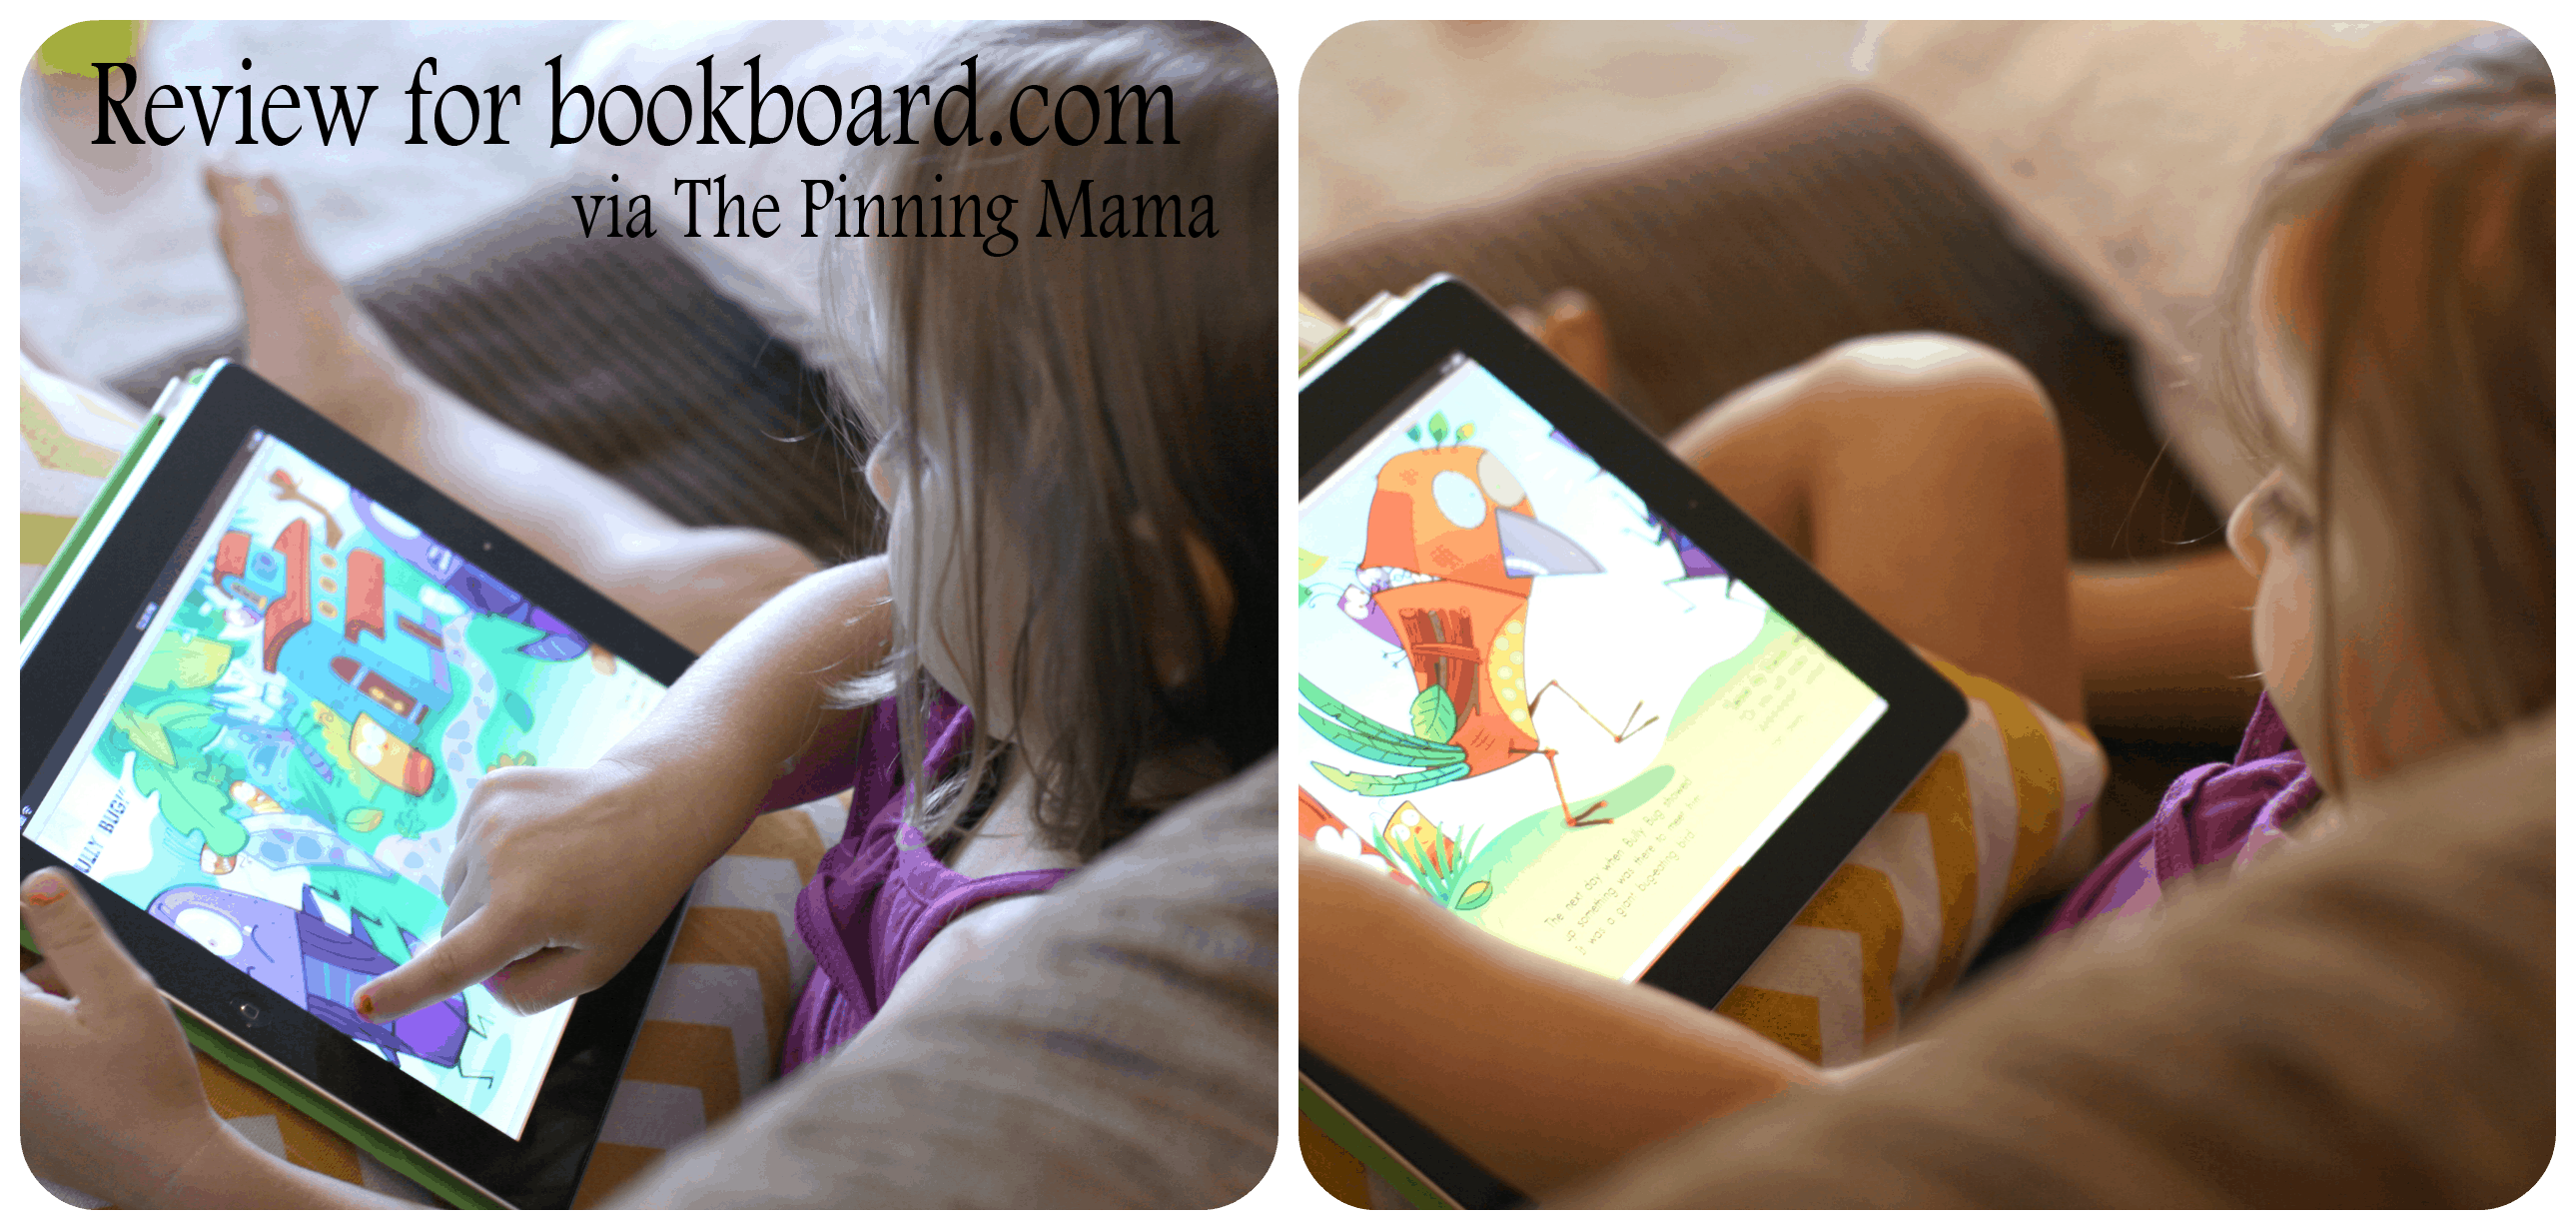 bookboard review kids www.thepinningmama.com